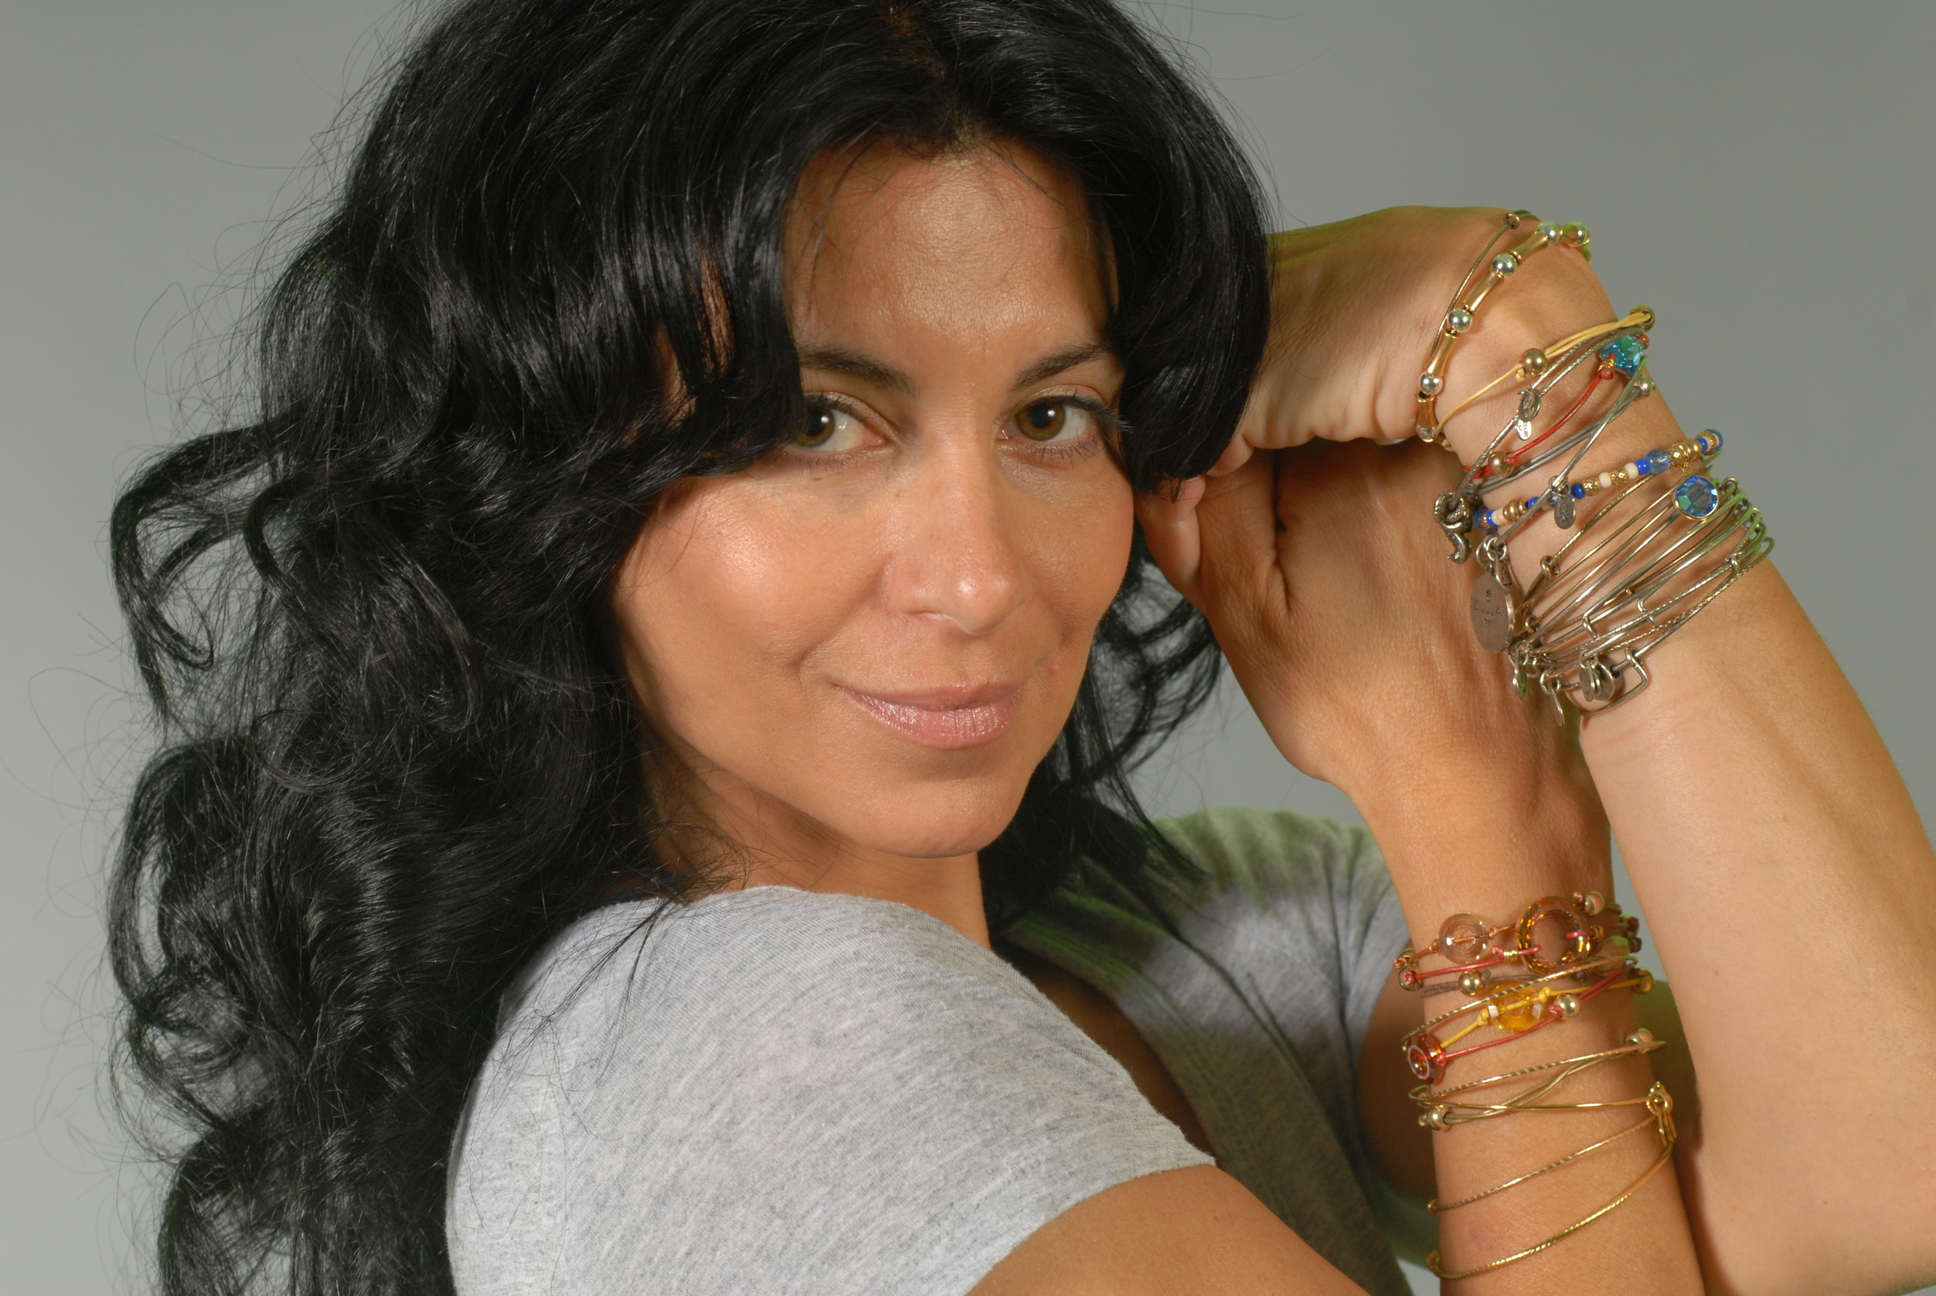 Step aside Kardashians, Carolyn Rafaelian is an Armenian- American who has taken the jewelry sector by storm with the founding of Alex and Ani. Growing up, Rafealian's father had a jewelry factory and when she and her sister misbehaved, their punishment was working in the factory. Little did she know that was the foundation of her starting her own company in 2004, named after her daughters, which has made its way all-over the world to women of all ages.  Keeping things eco-friendly, the products are made of recycled materials. Aside from bringing in $500 million in sales with 65 stores, Rafaelian also owns Sakonnet Vineyards and Belcourt Castle.  Rafaelian is ranking #22 with a net worth of $700 million.